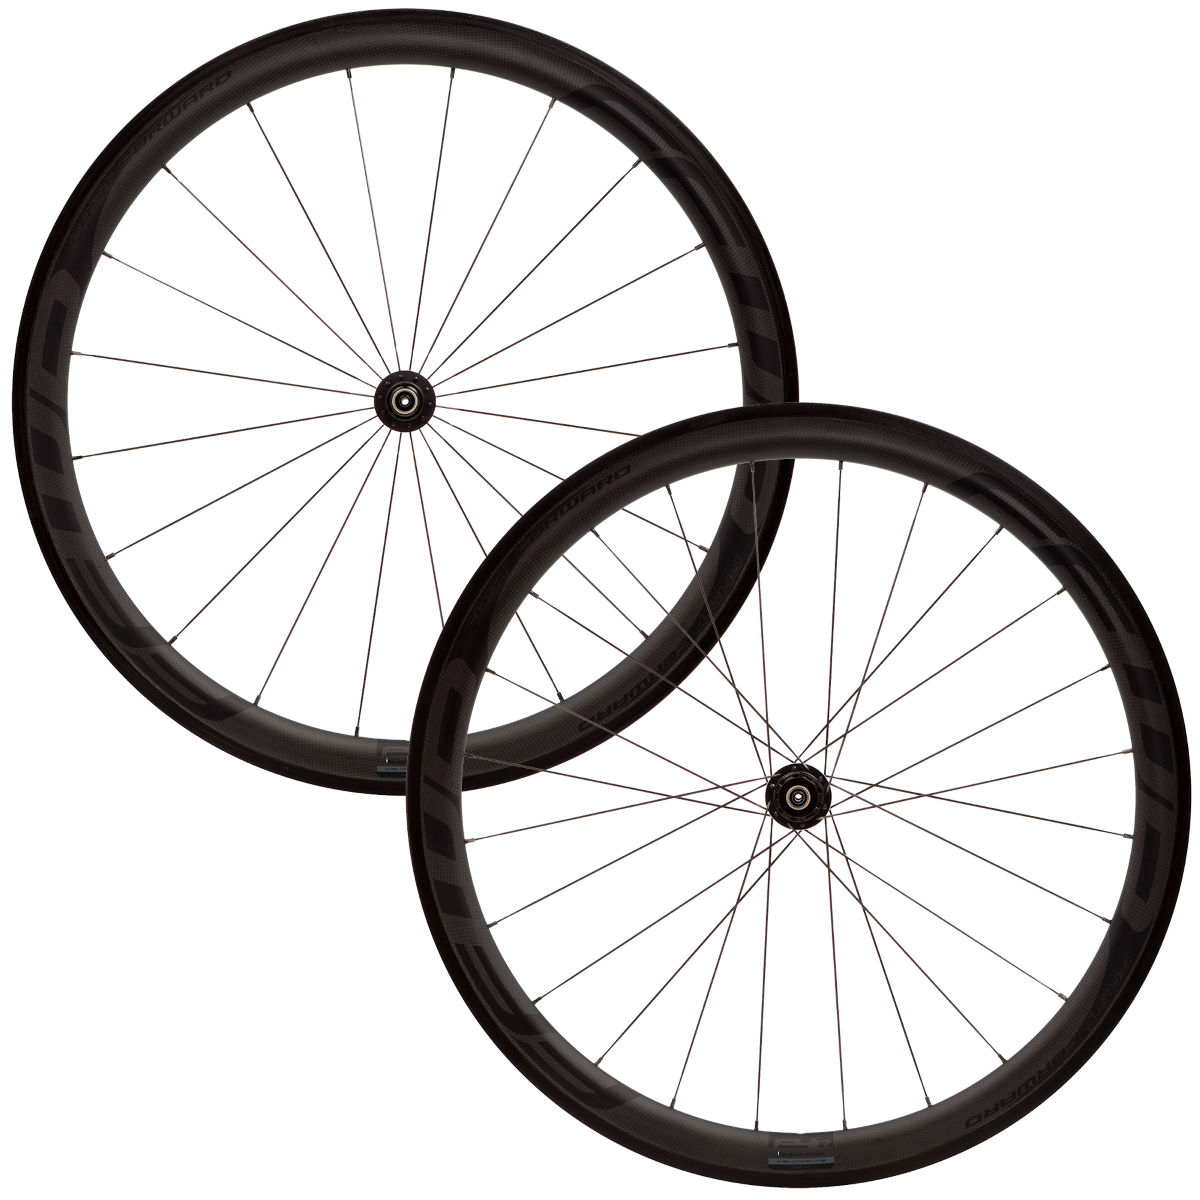 Fast Forward F4R DT180 Special Carbon Tubular Wheelset - 10/11 Speed Campagno Noir Roues performance